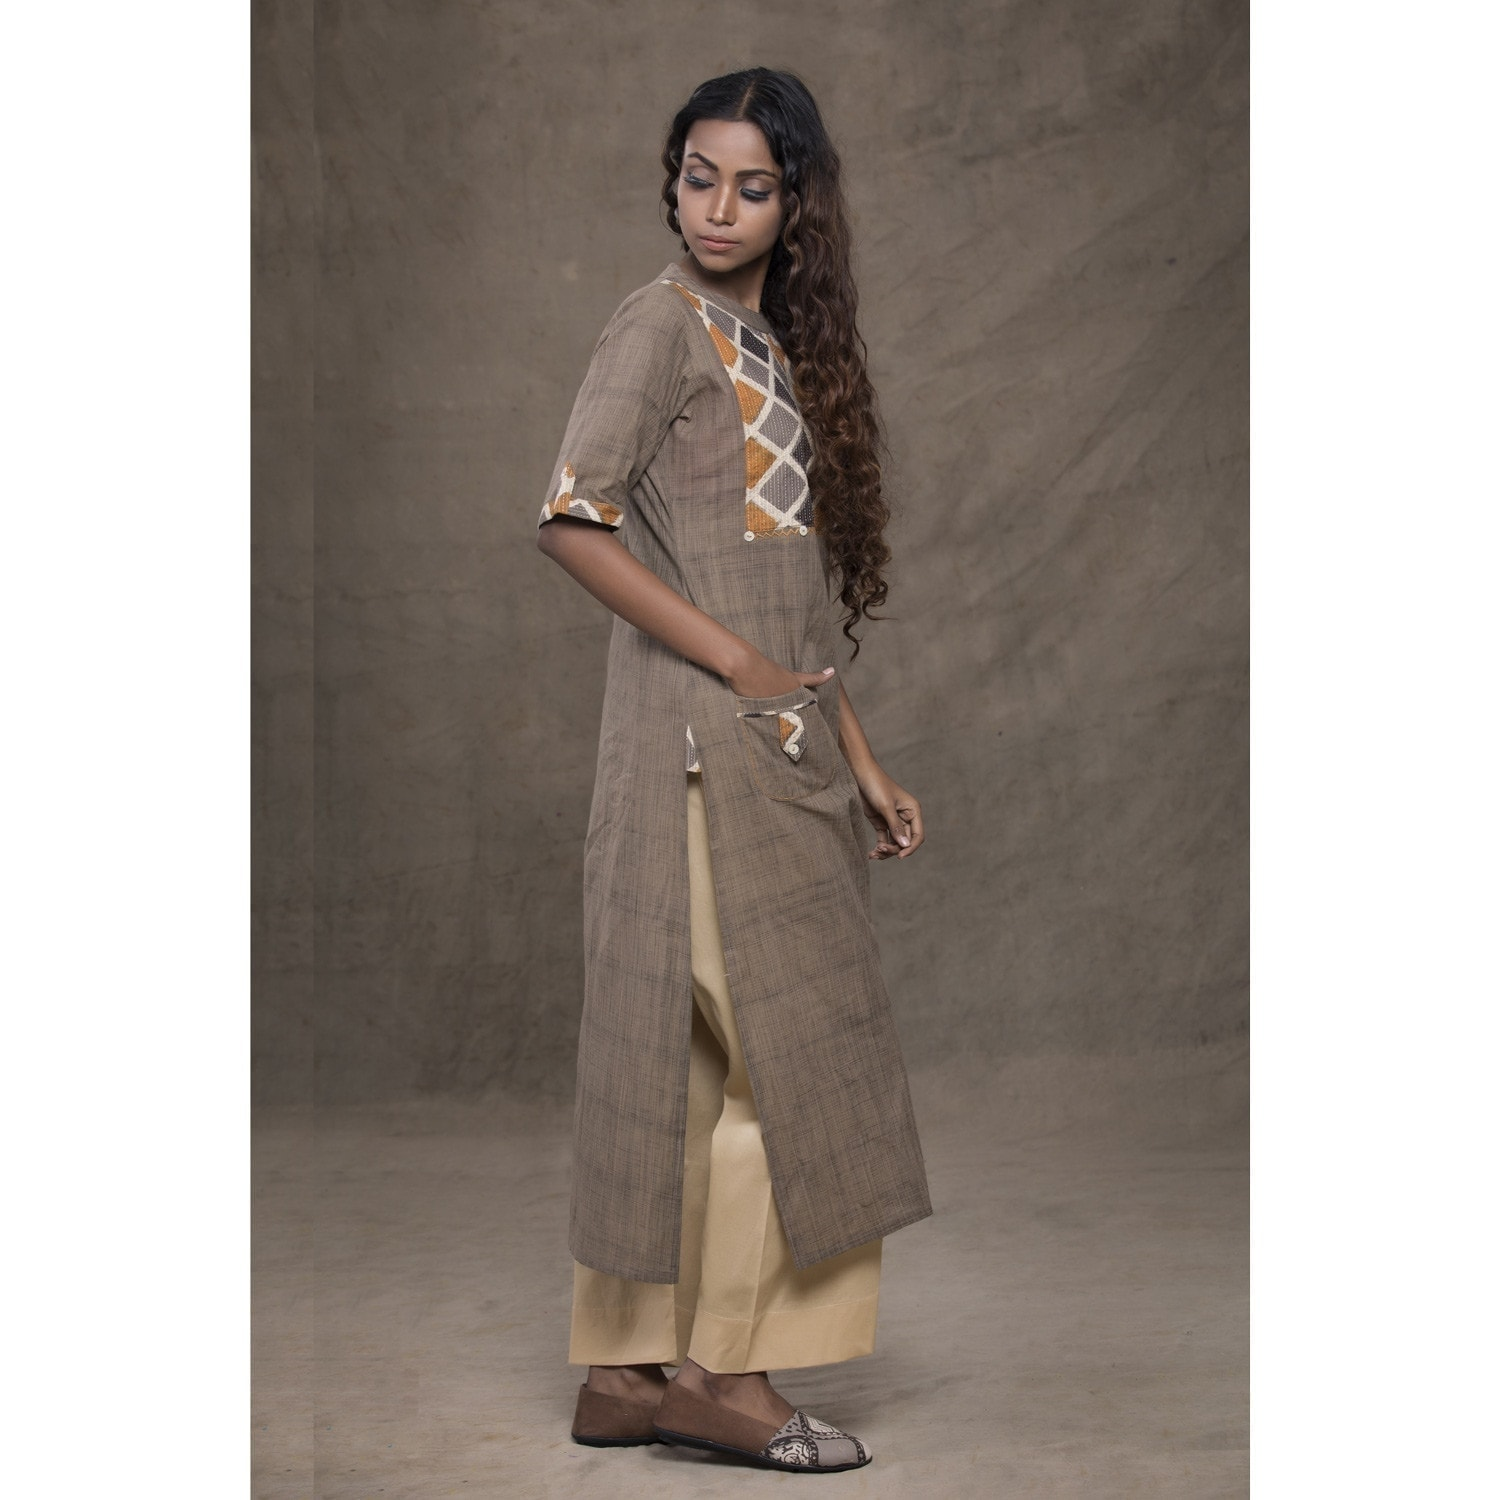 Straight linen kurta with front pocket